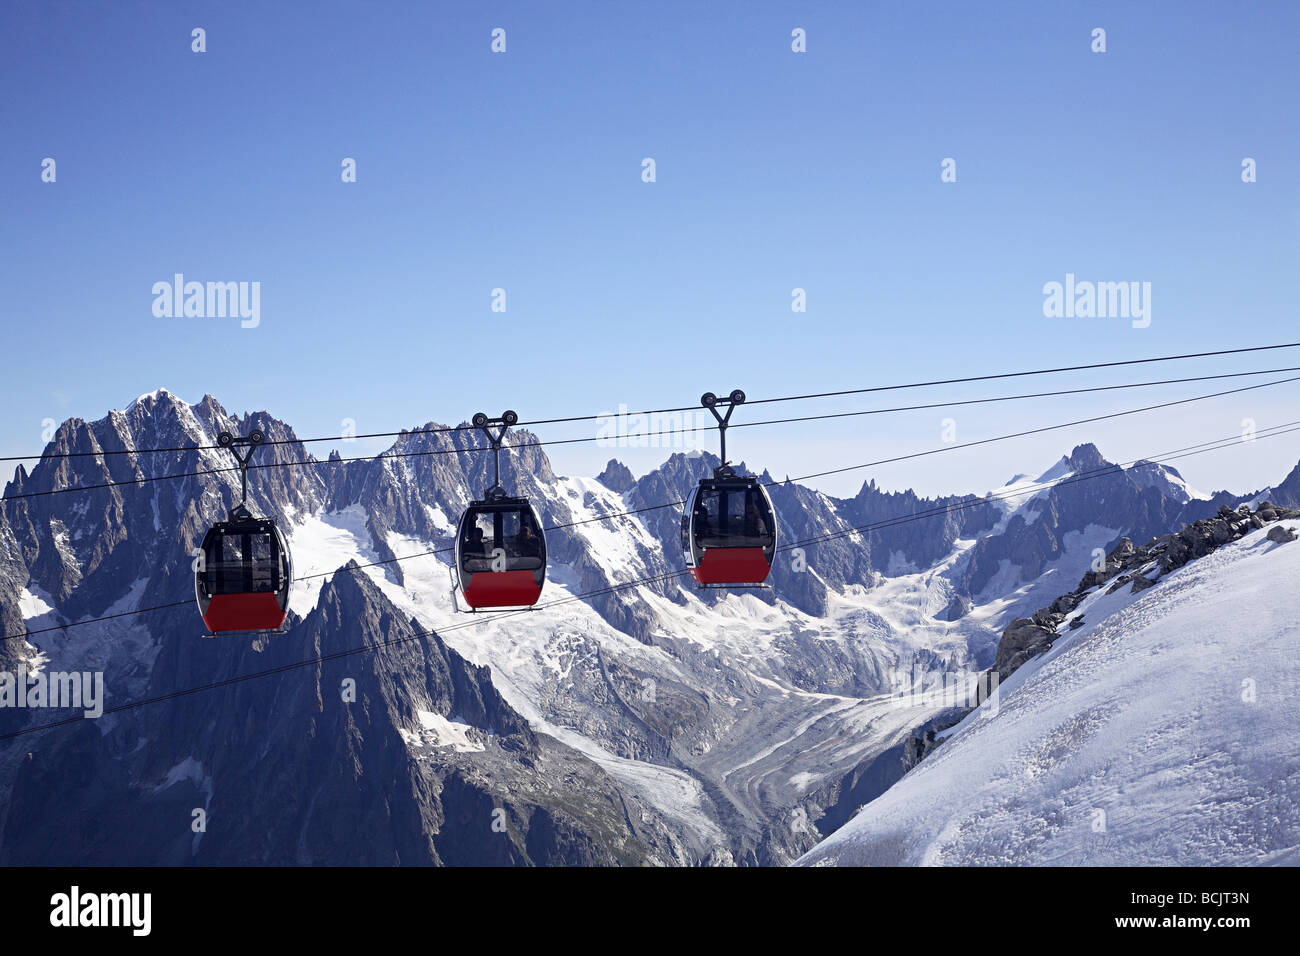 Cable cars in french alps near mont blanc - Stock Image